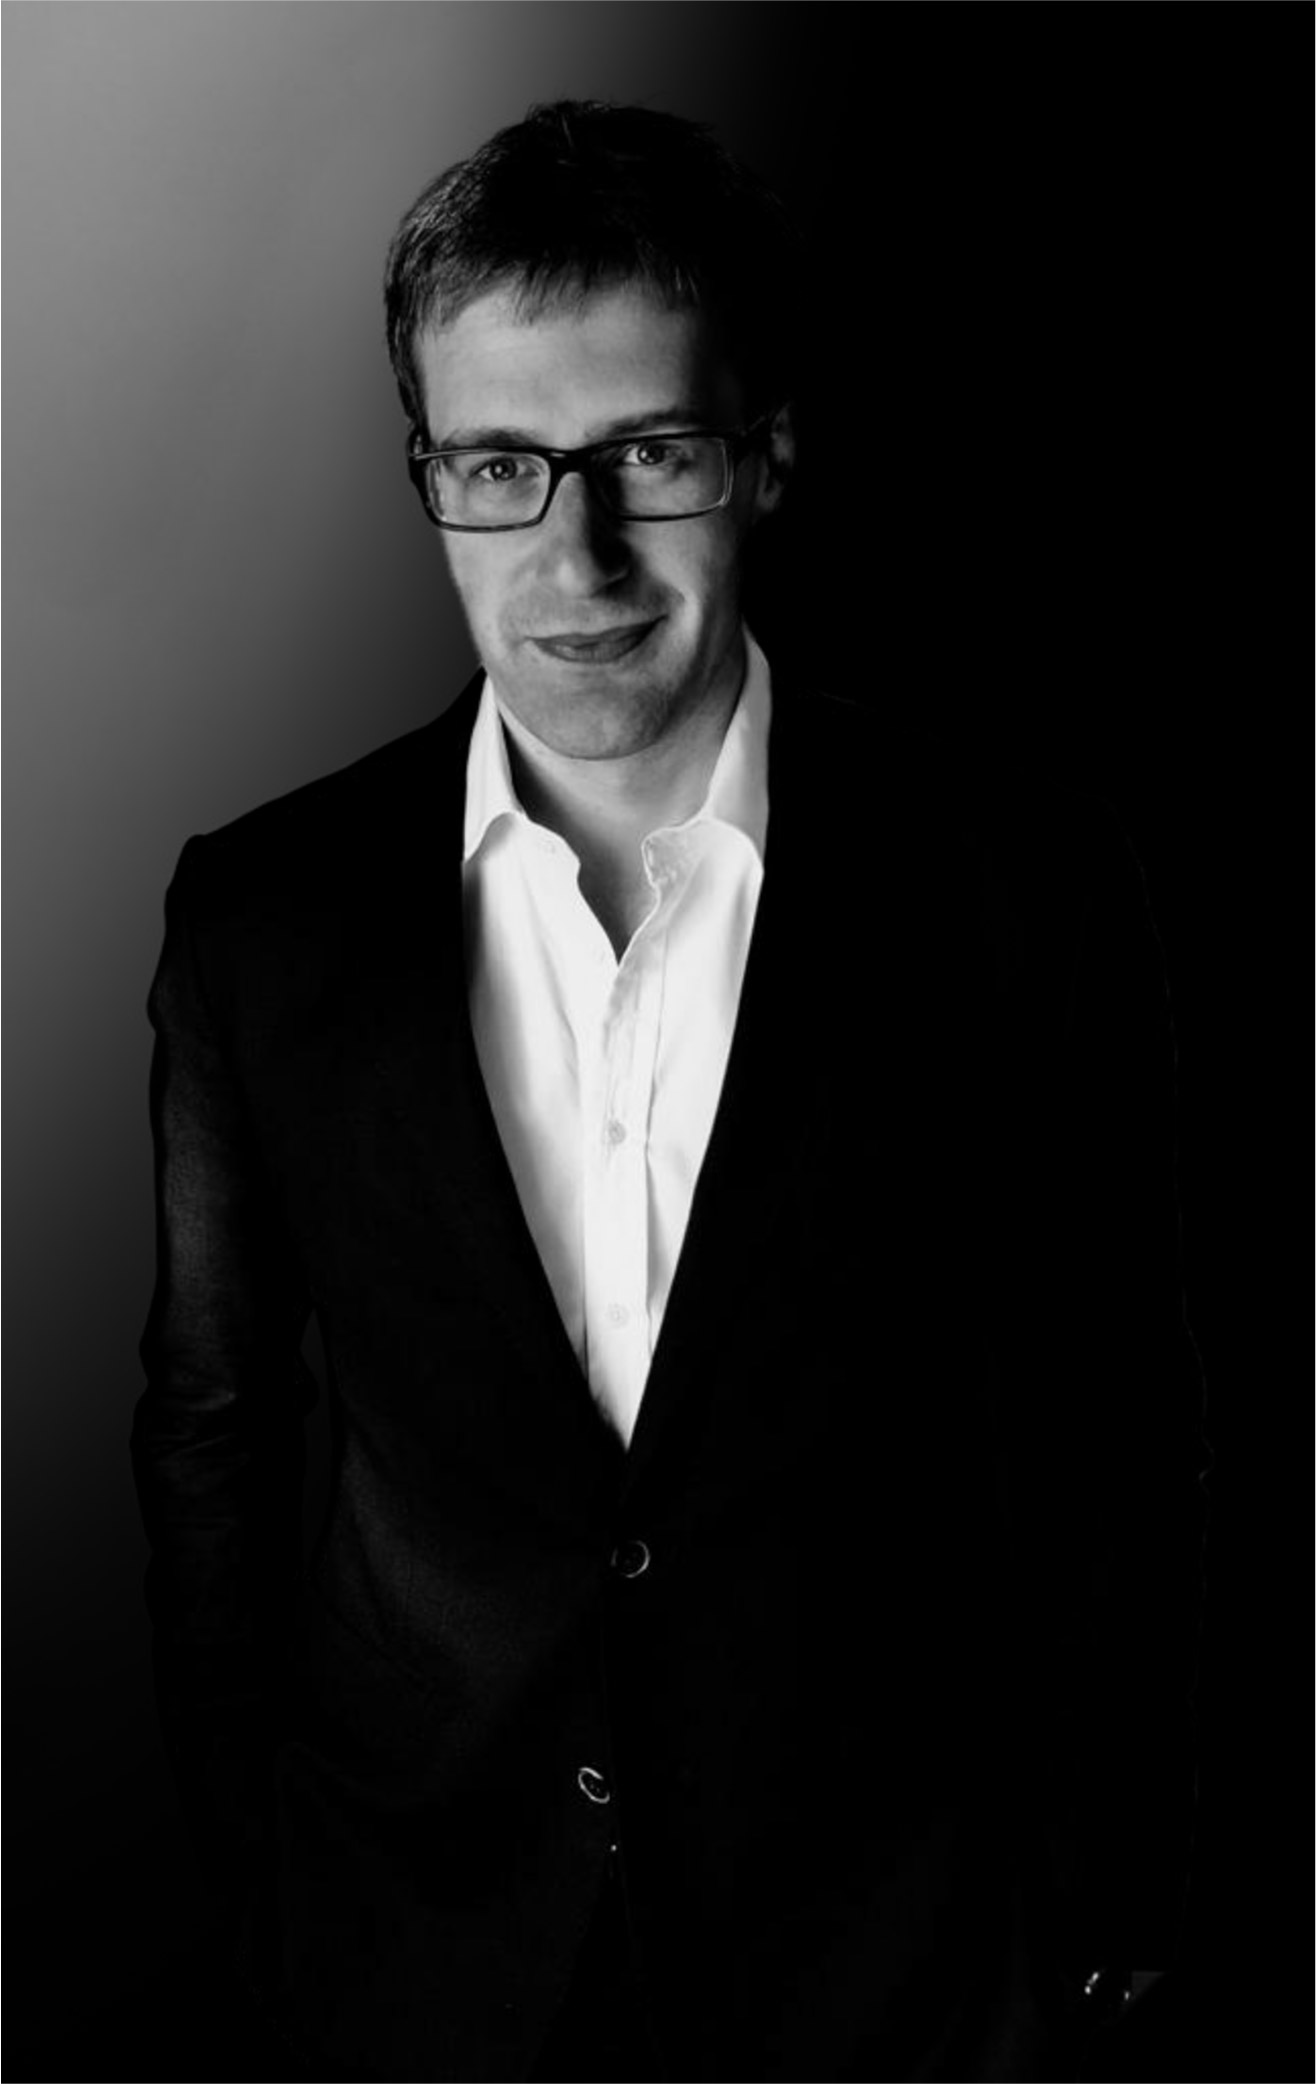 Daniel Gehlen, founder and managing partner of Gehlen Braeutigam Capital